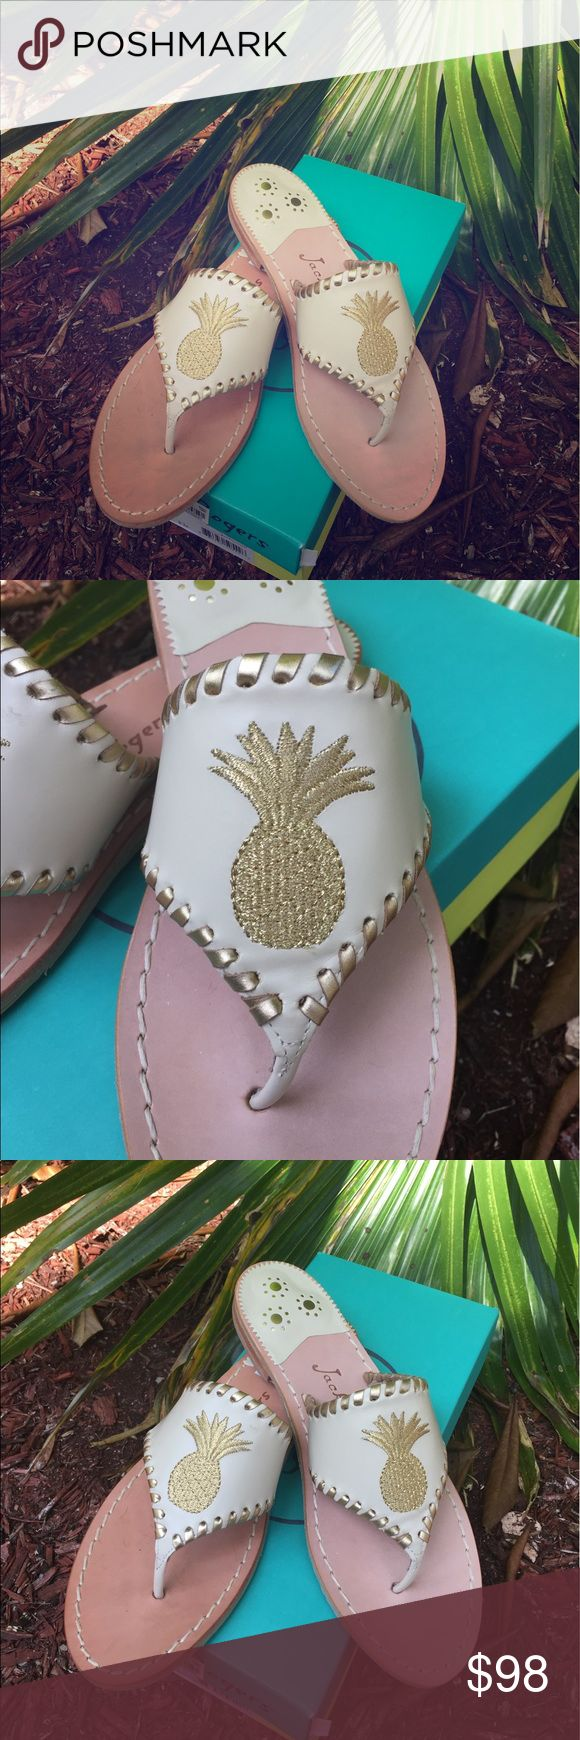 Jack Rogers Pineapple Sandals Never worn in box. Jack rogers Sandals. Cream with gold Pineapple. Jack Rogers Shoes Sandals